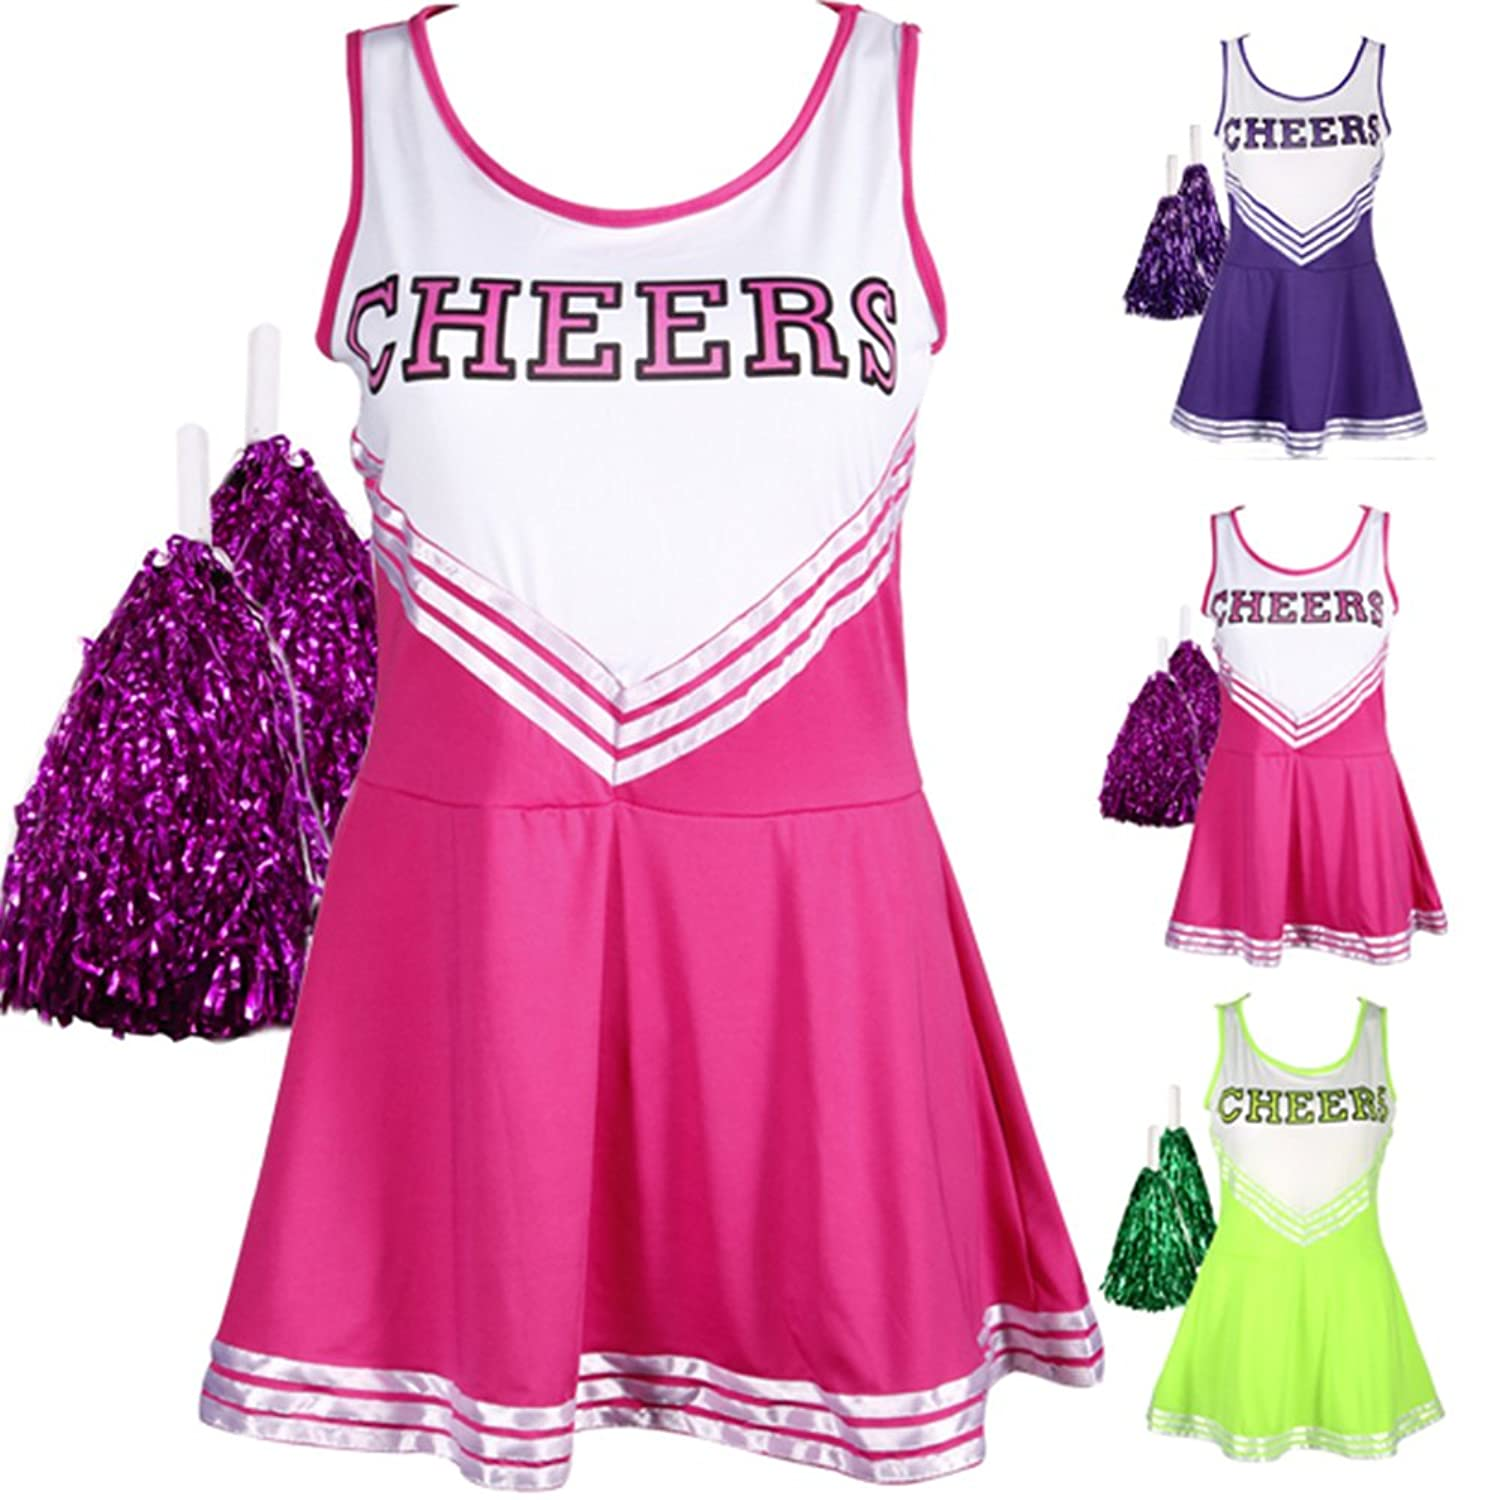 Fun Cheerleader Minidress Costume. Spread ...  sc 1 st  Costume Overload & Cute Cheerleader Halloween Costumes for Girls u0026 Women